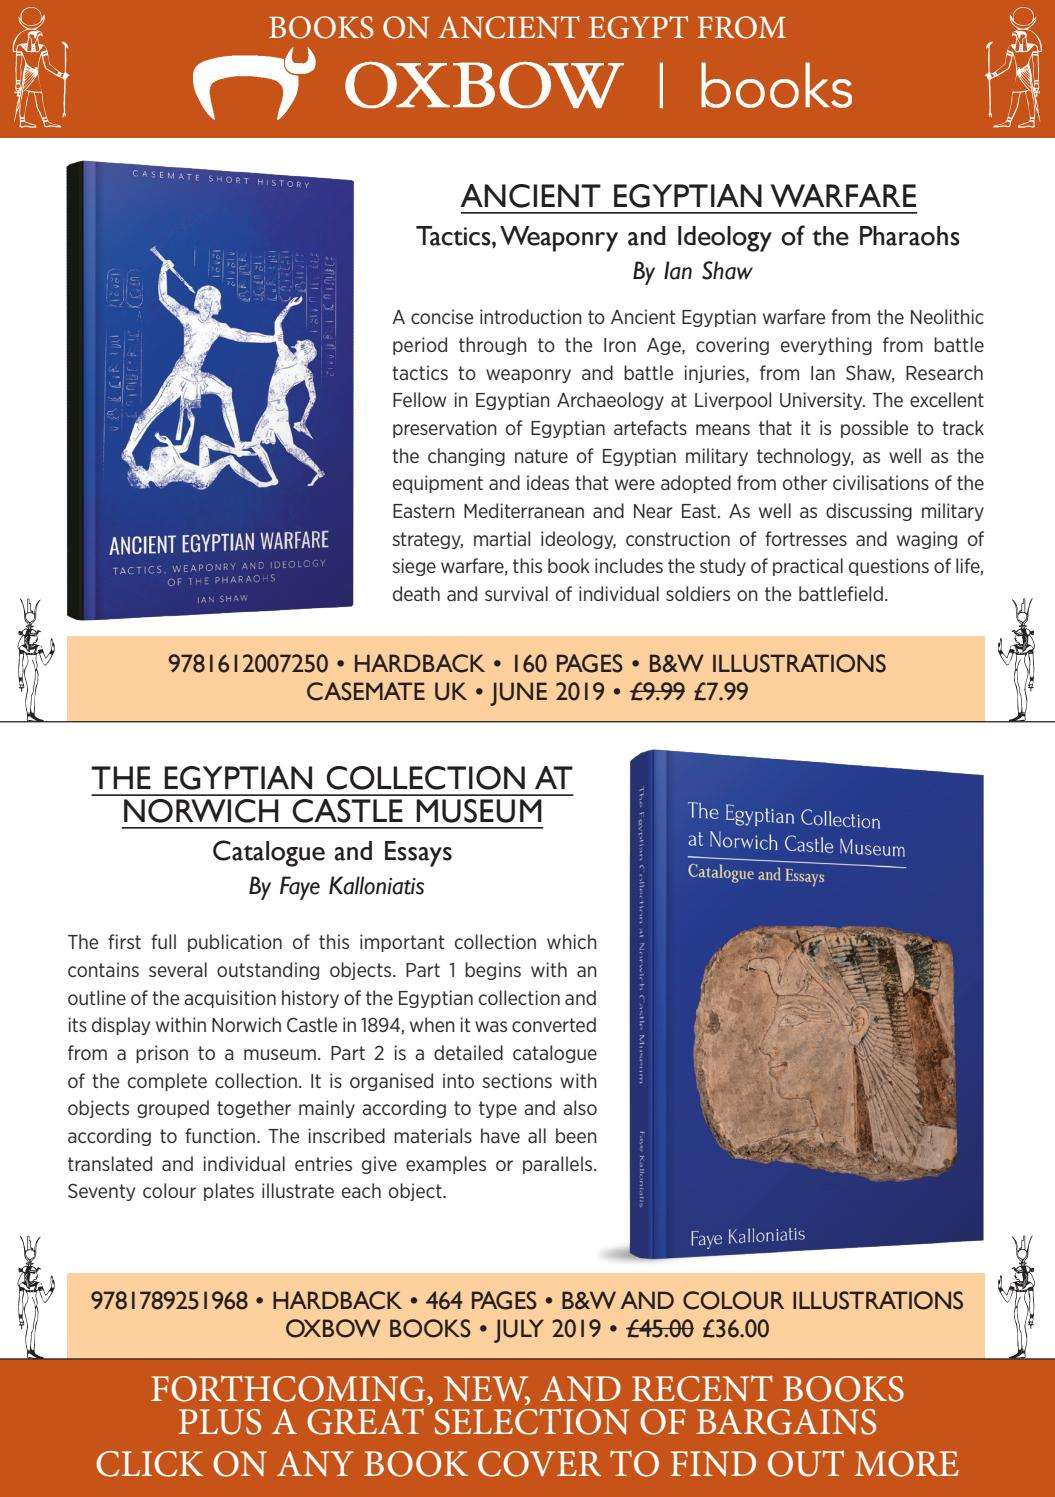 Books on Ancient Egypt from Oxbow Books by Casemate Publishers Ltd